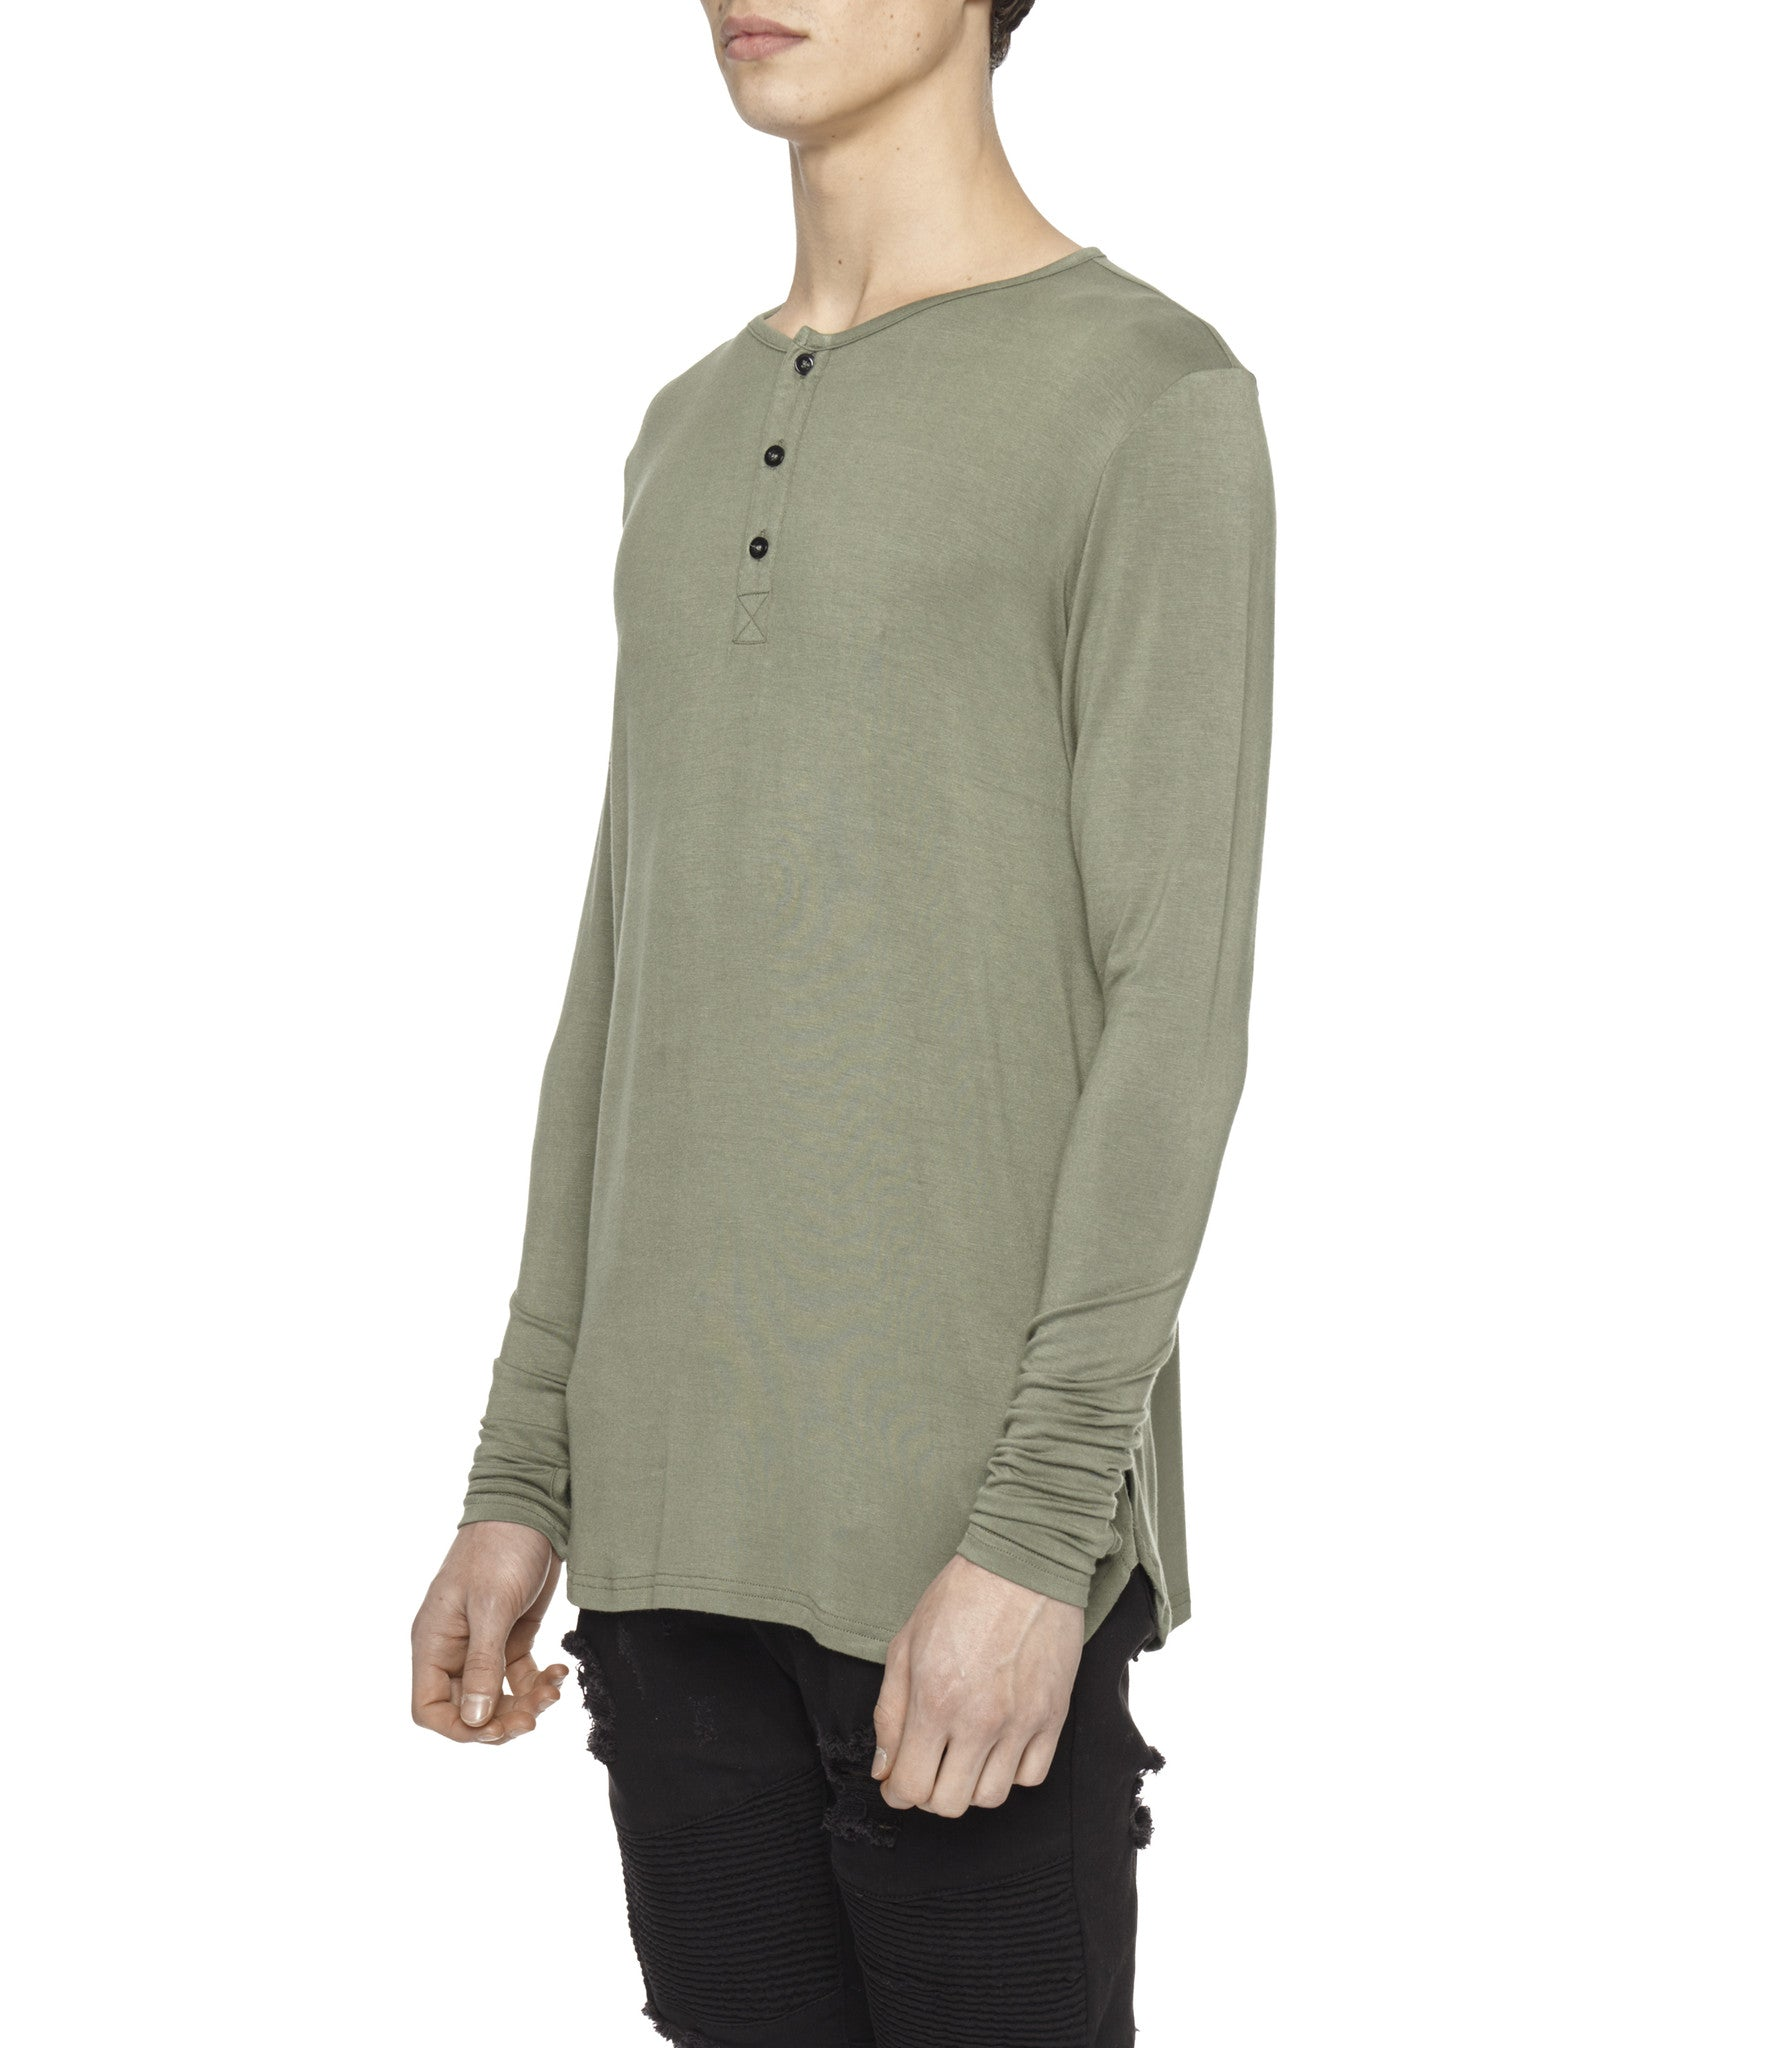 LS264 Under Layer Henley Tee - Khaki - underated london - underatedco - 4